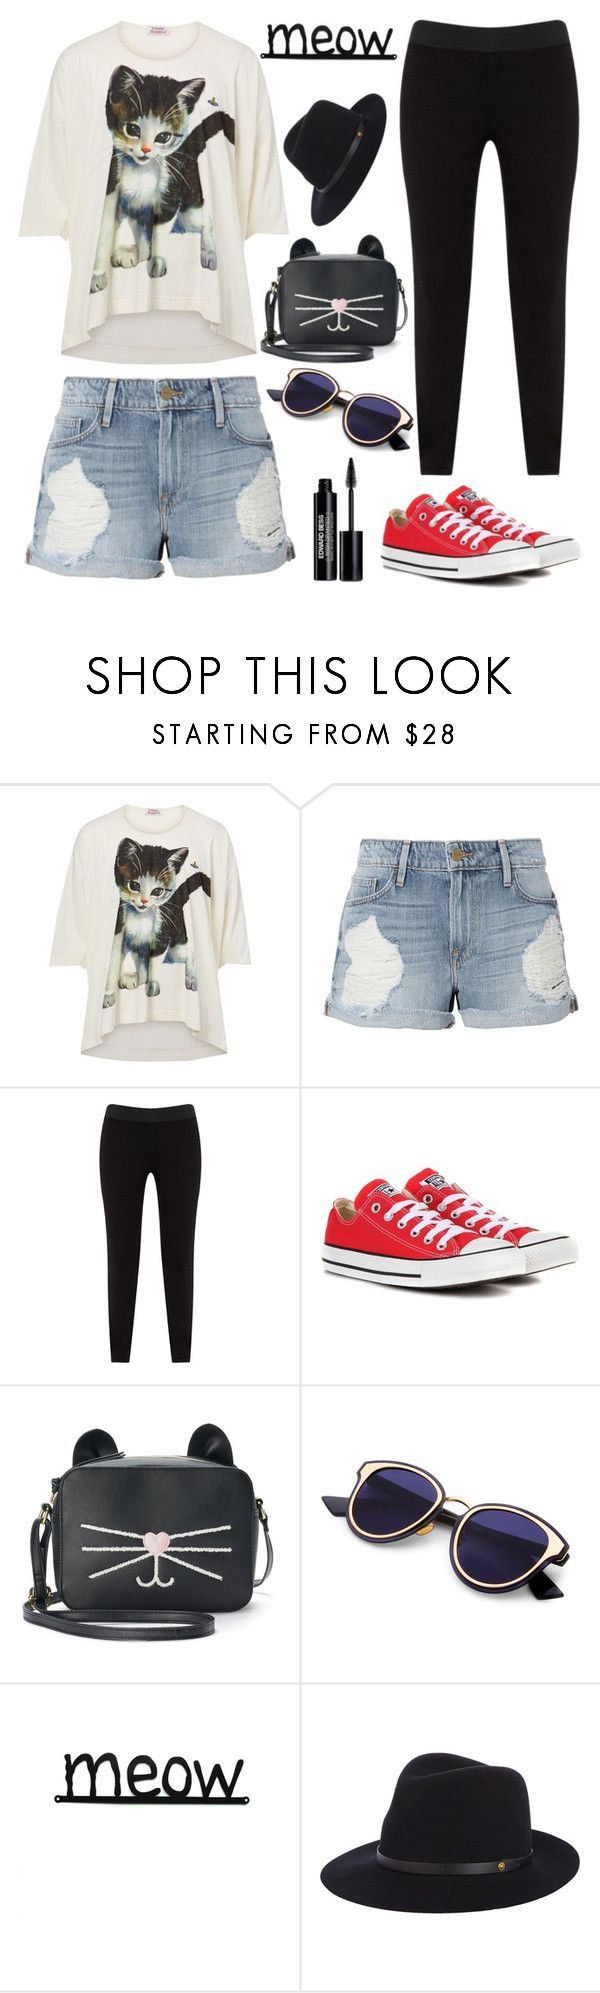 """Meow"" by pure-vnom ❤ liked on Polyvore featuring Vivienne Westwood, Frame, JunaRose, Converse, T-shirt & Jeans, rag & bone and Edward Bess"